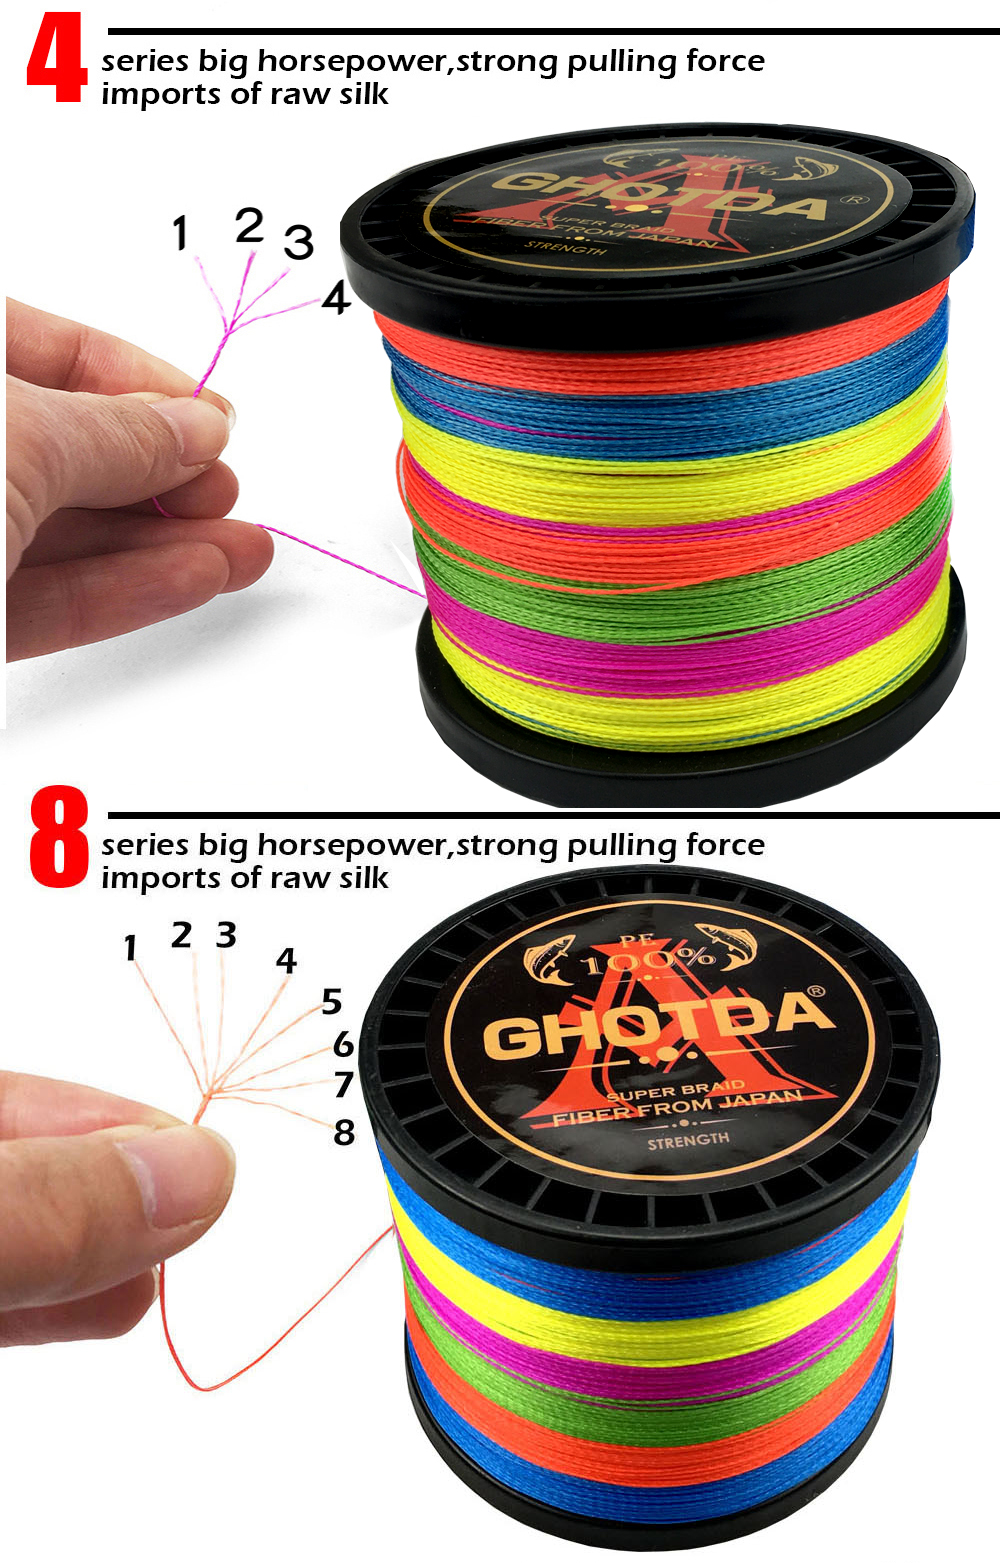 GHOTDA Grey 4 Strand Braided Fishing Line for Freshwater and Sea Angling